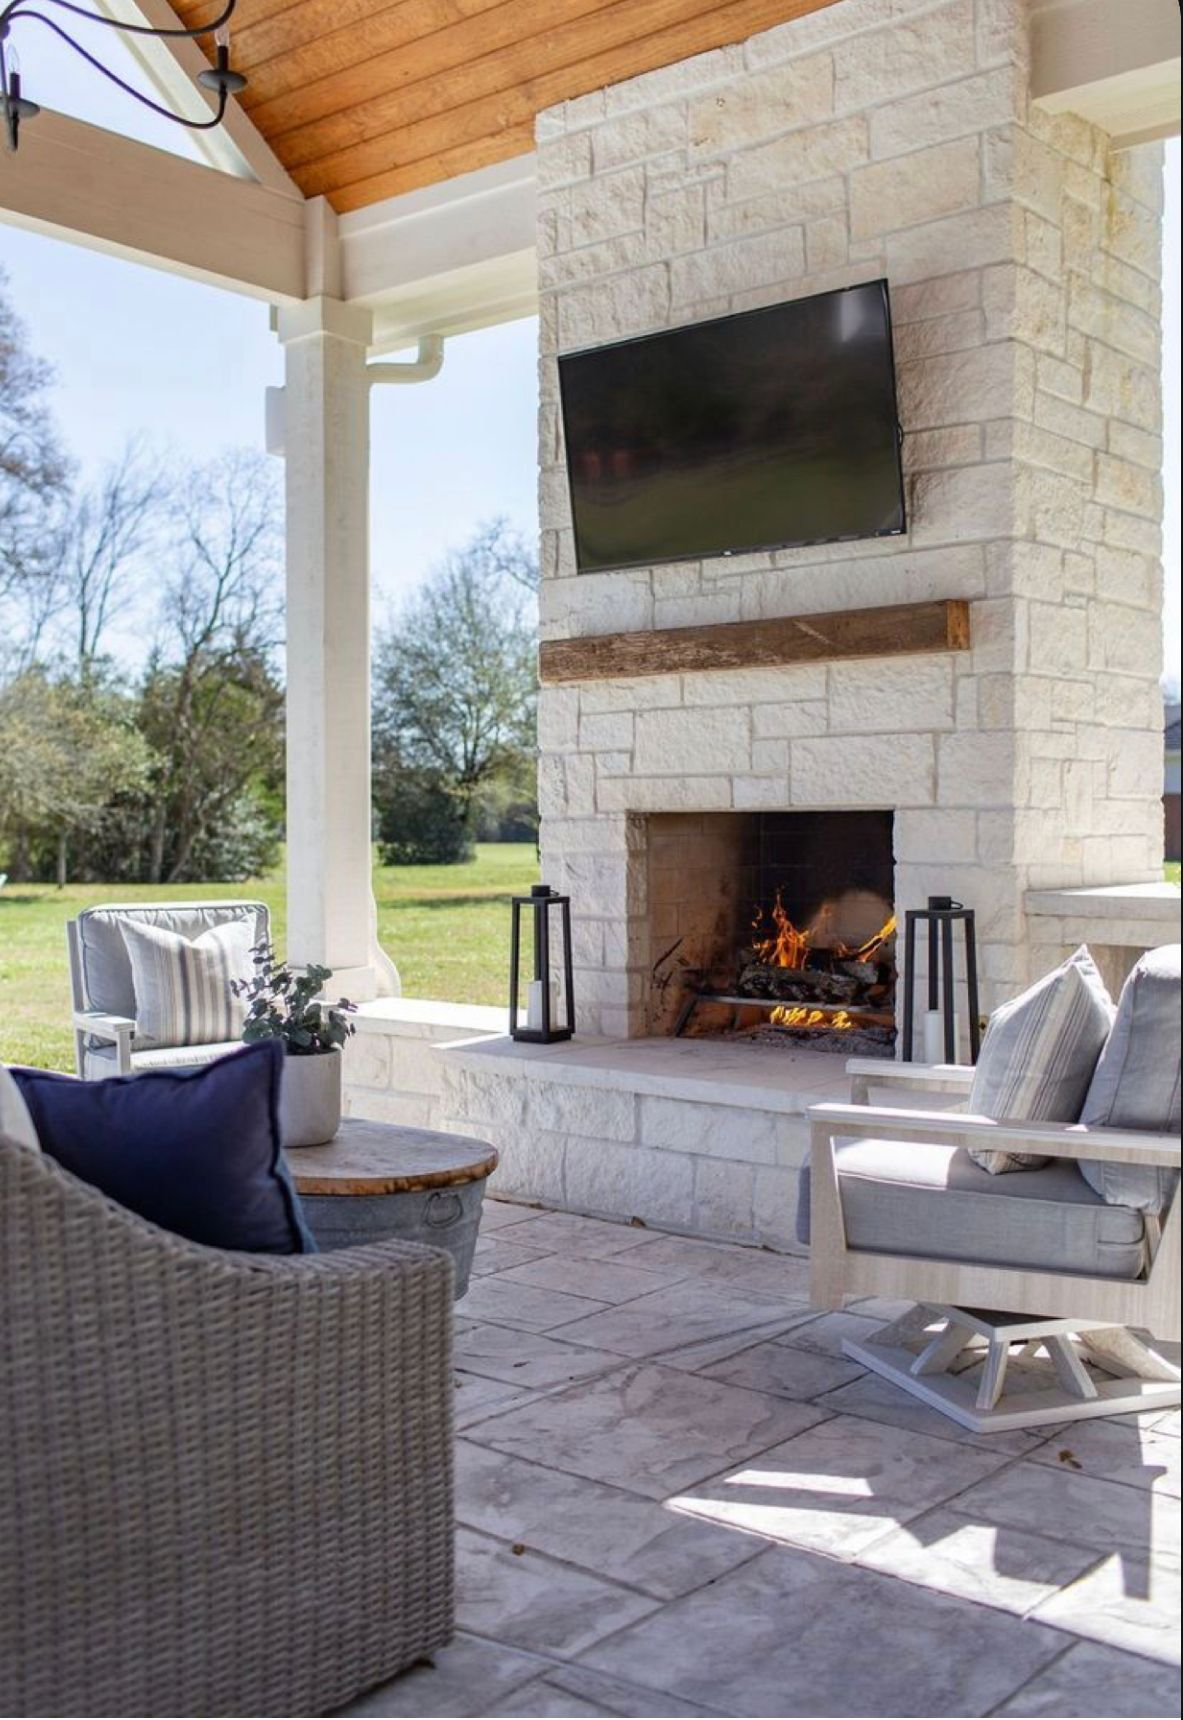 7 High End House Building Ideas For Your New Build In 2020 Patio Style Outdoor Decor Backyard Outdoor Living Rooms